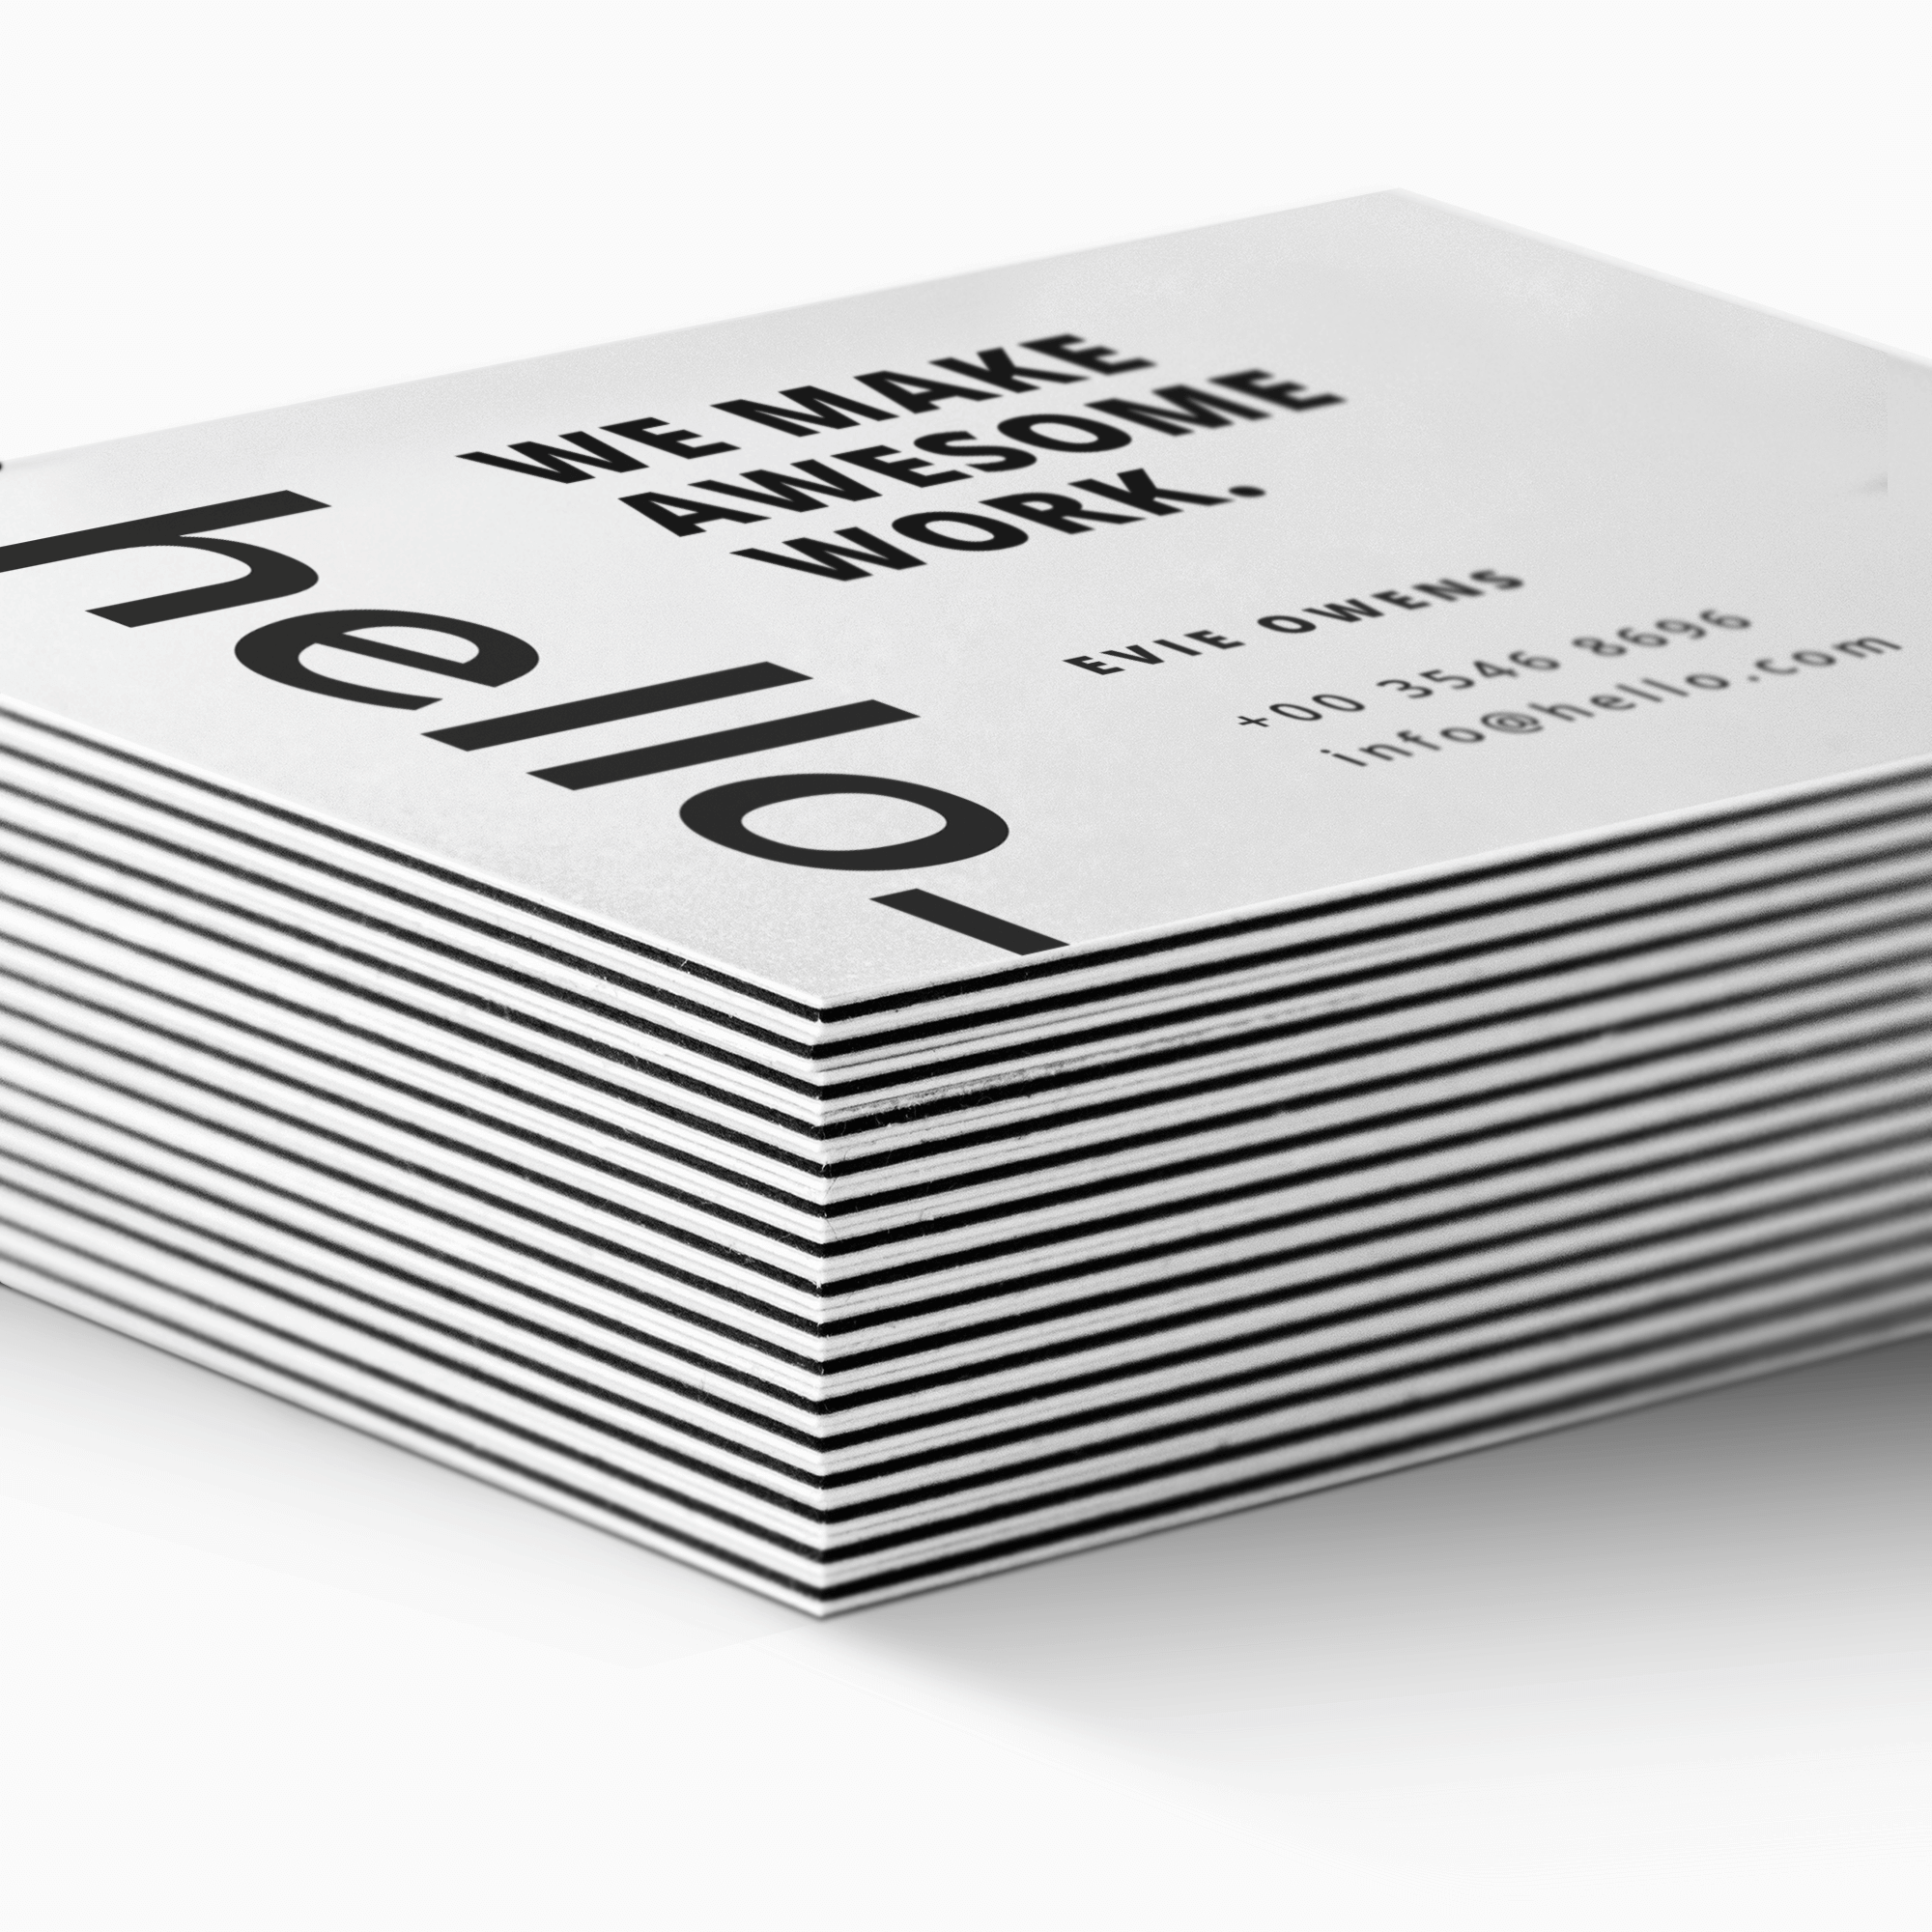 A stack of multi-layer business cards available at Helloprint with customised printing options for a cheap price